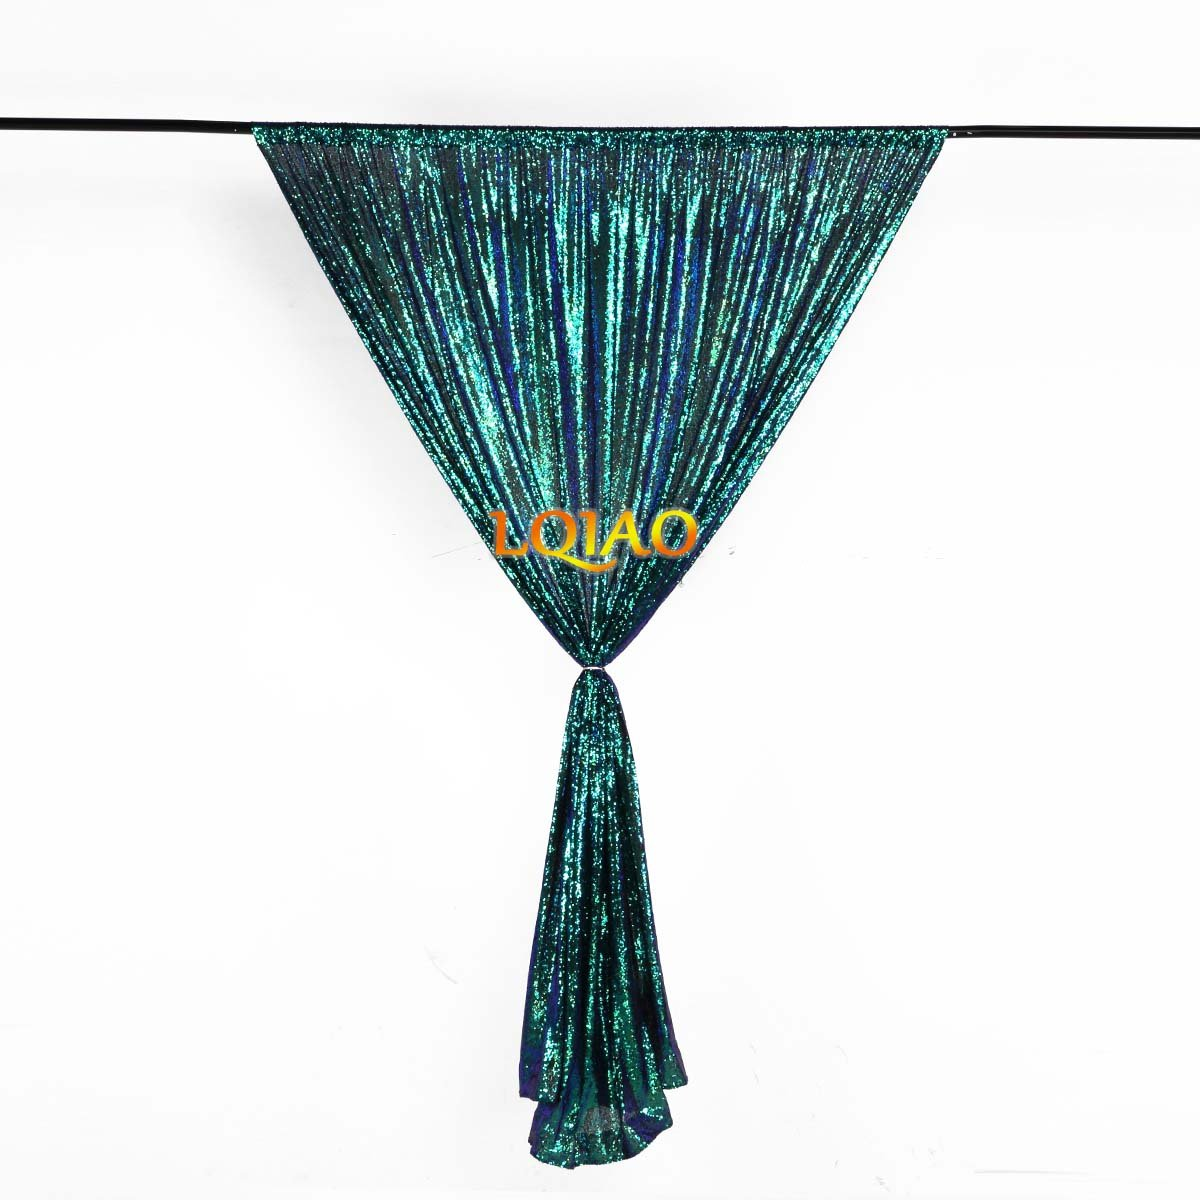 LQIAO Embroidered Sequin Fabric Backdrop Curtain 4FTx8FT Fluorescence Green Modern Window Drapes Sequin Curtain for living room/photo booth backdrop